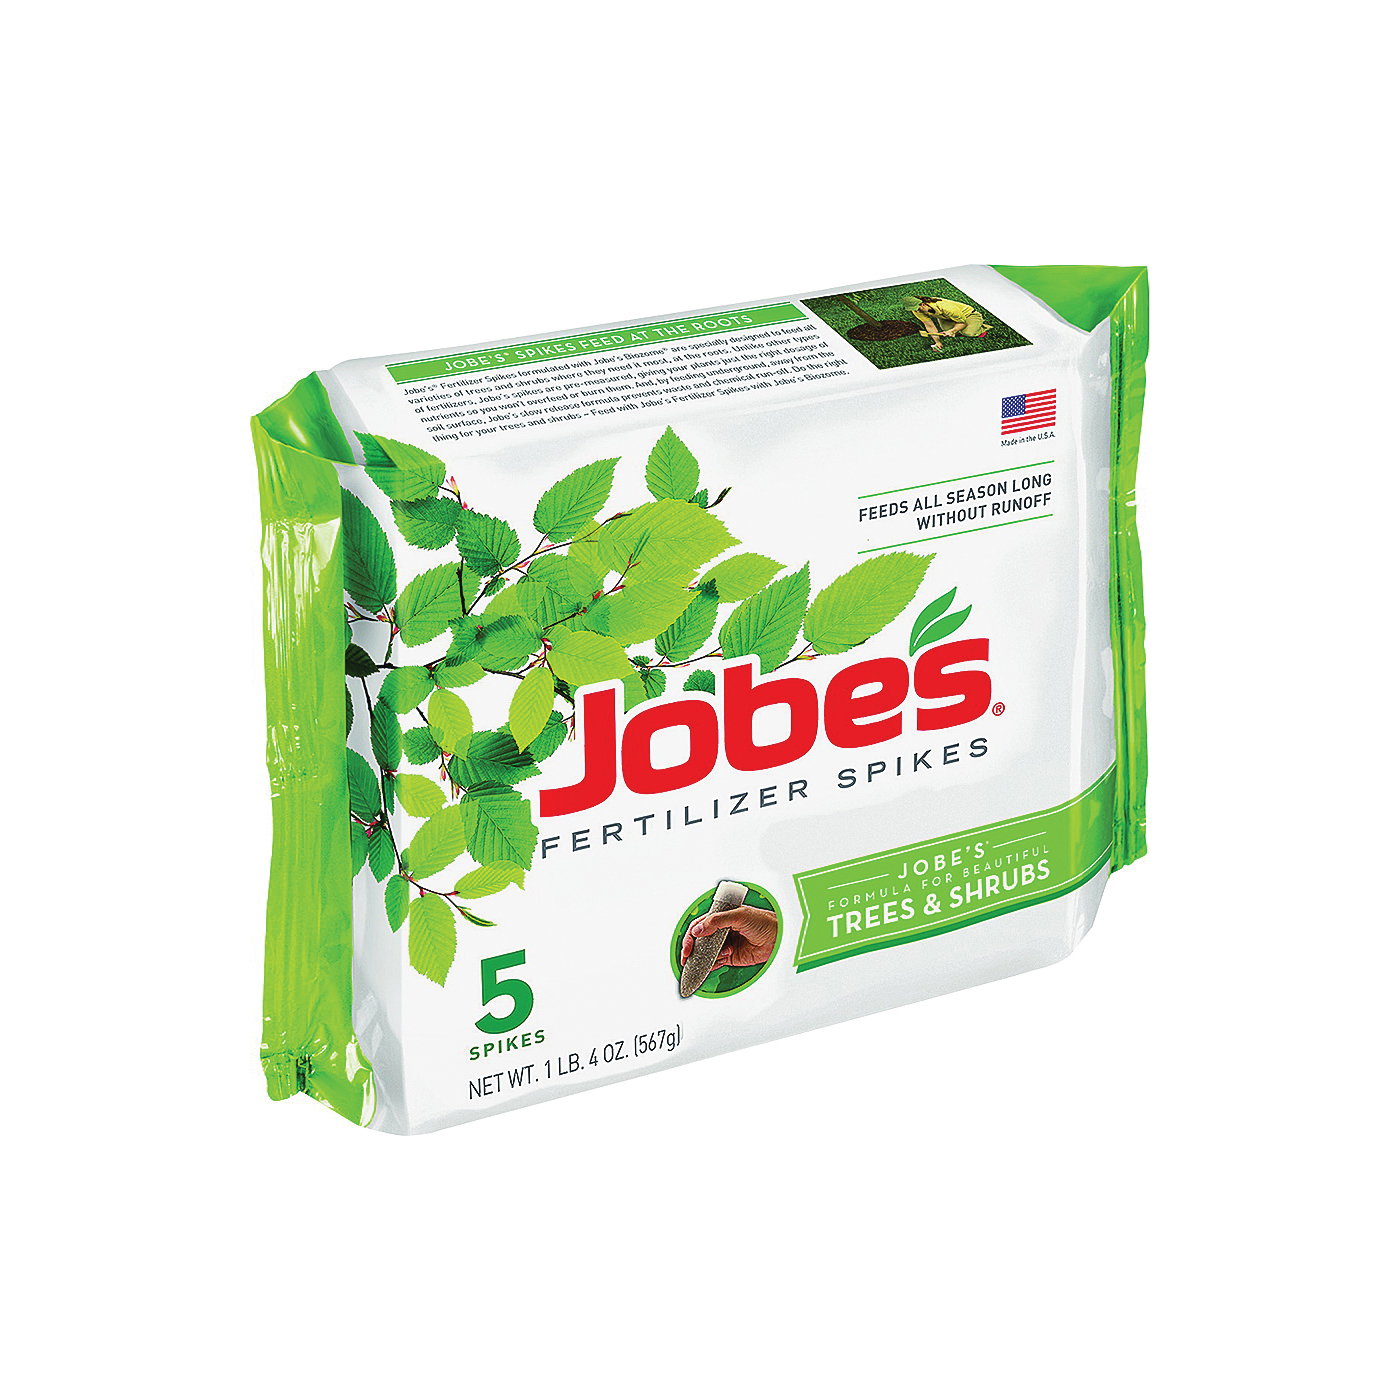 Picture of Jobes 01000 Fertilizer Spike, Spike, Gray/Light Brown, Slight Ammonia, 4 lb Package, Pack